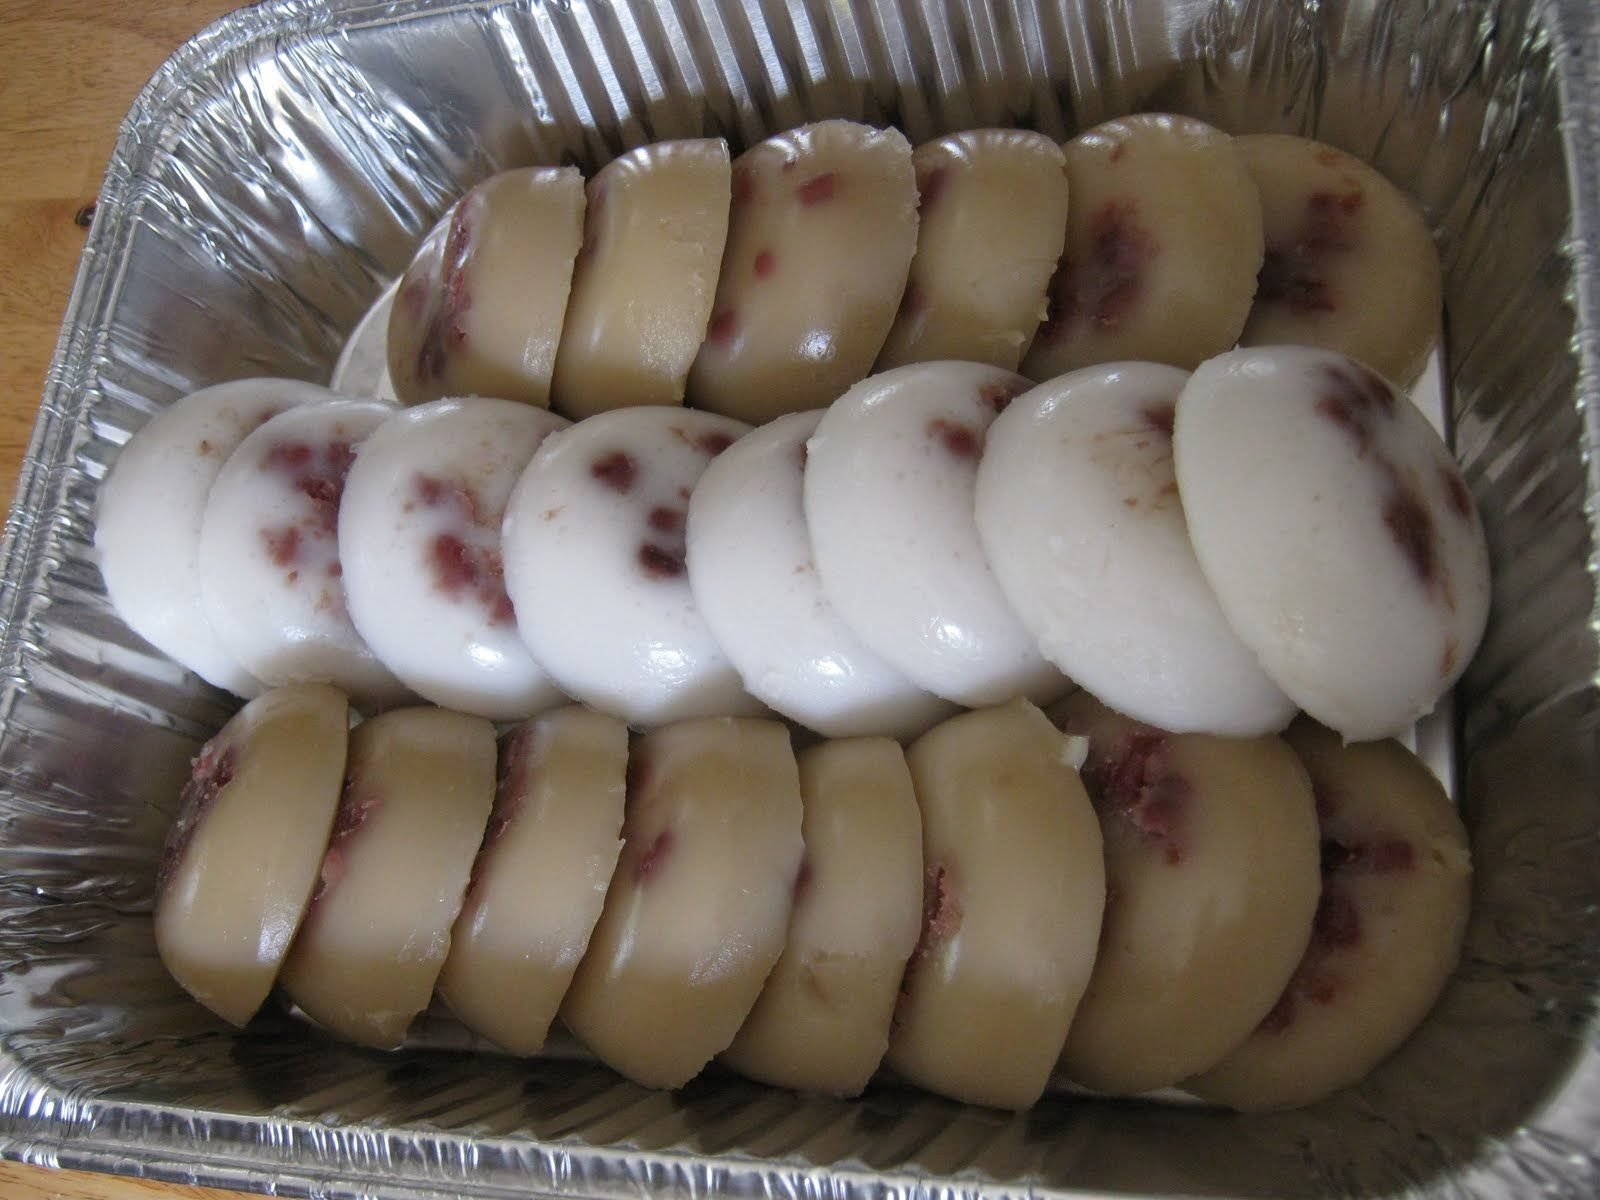 Chinese steamed cake this is another snack commonly